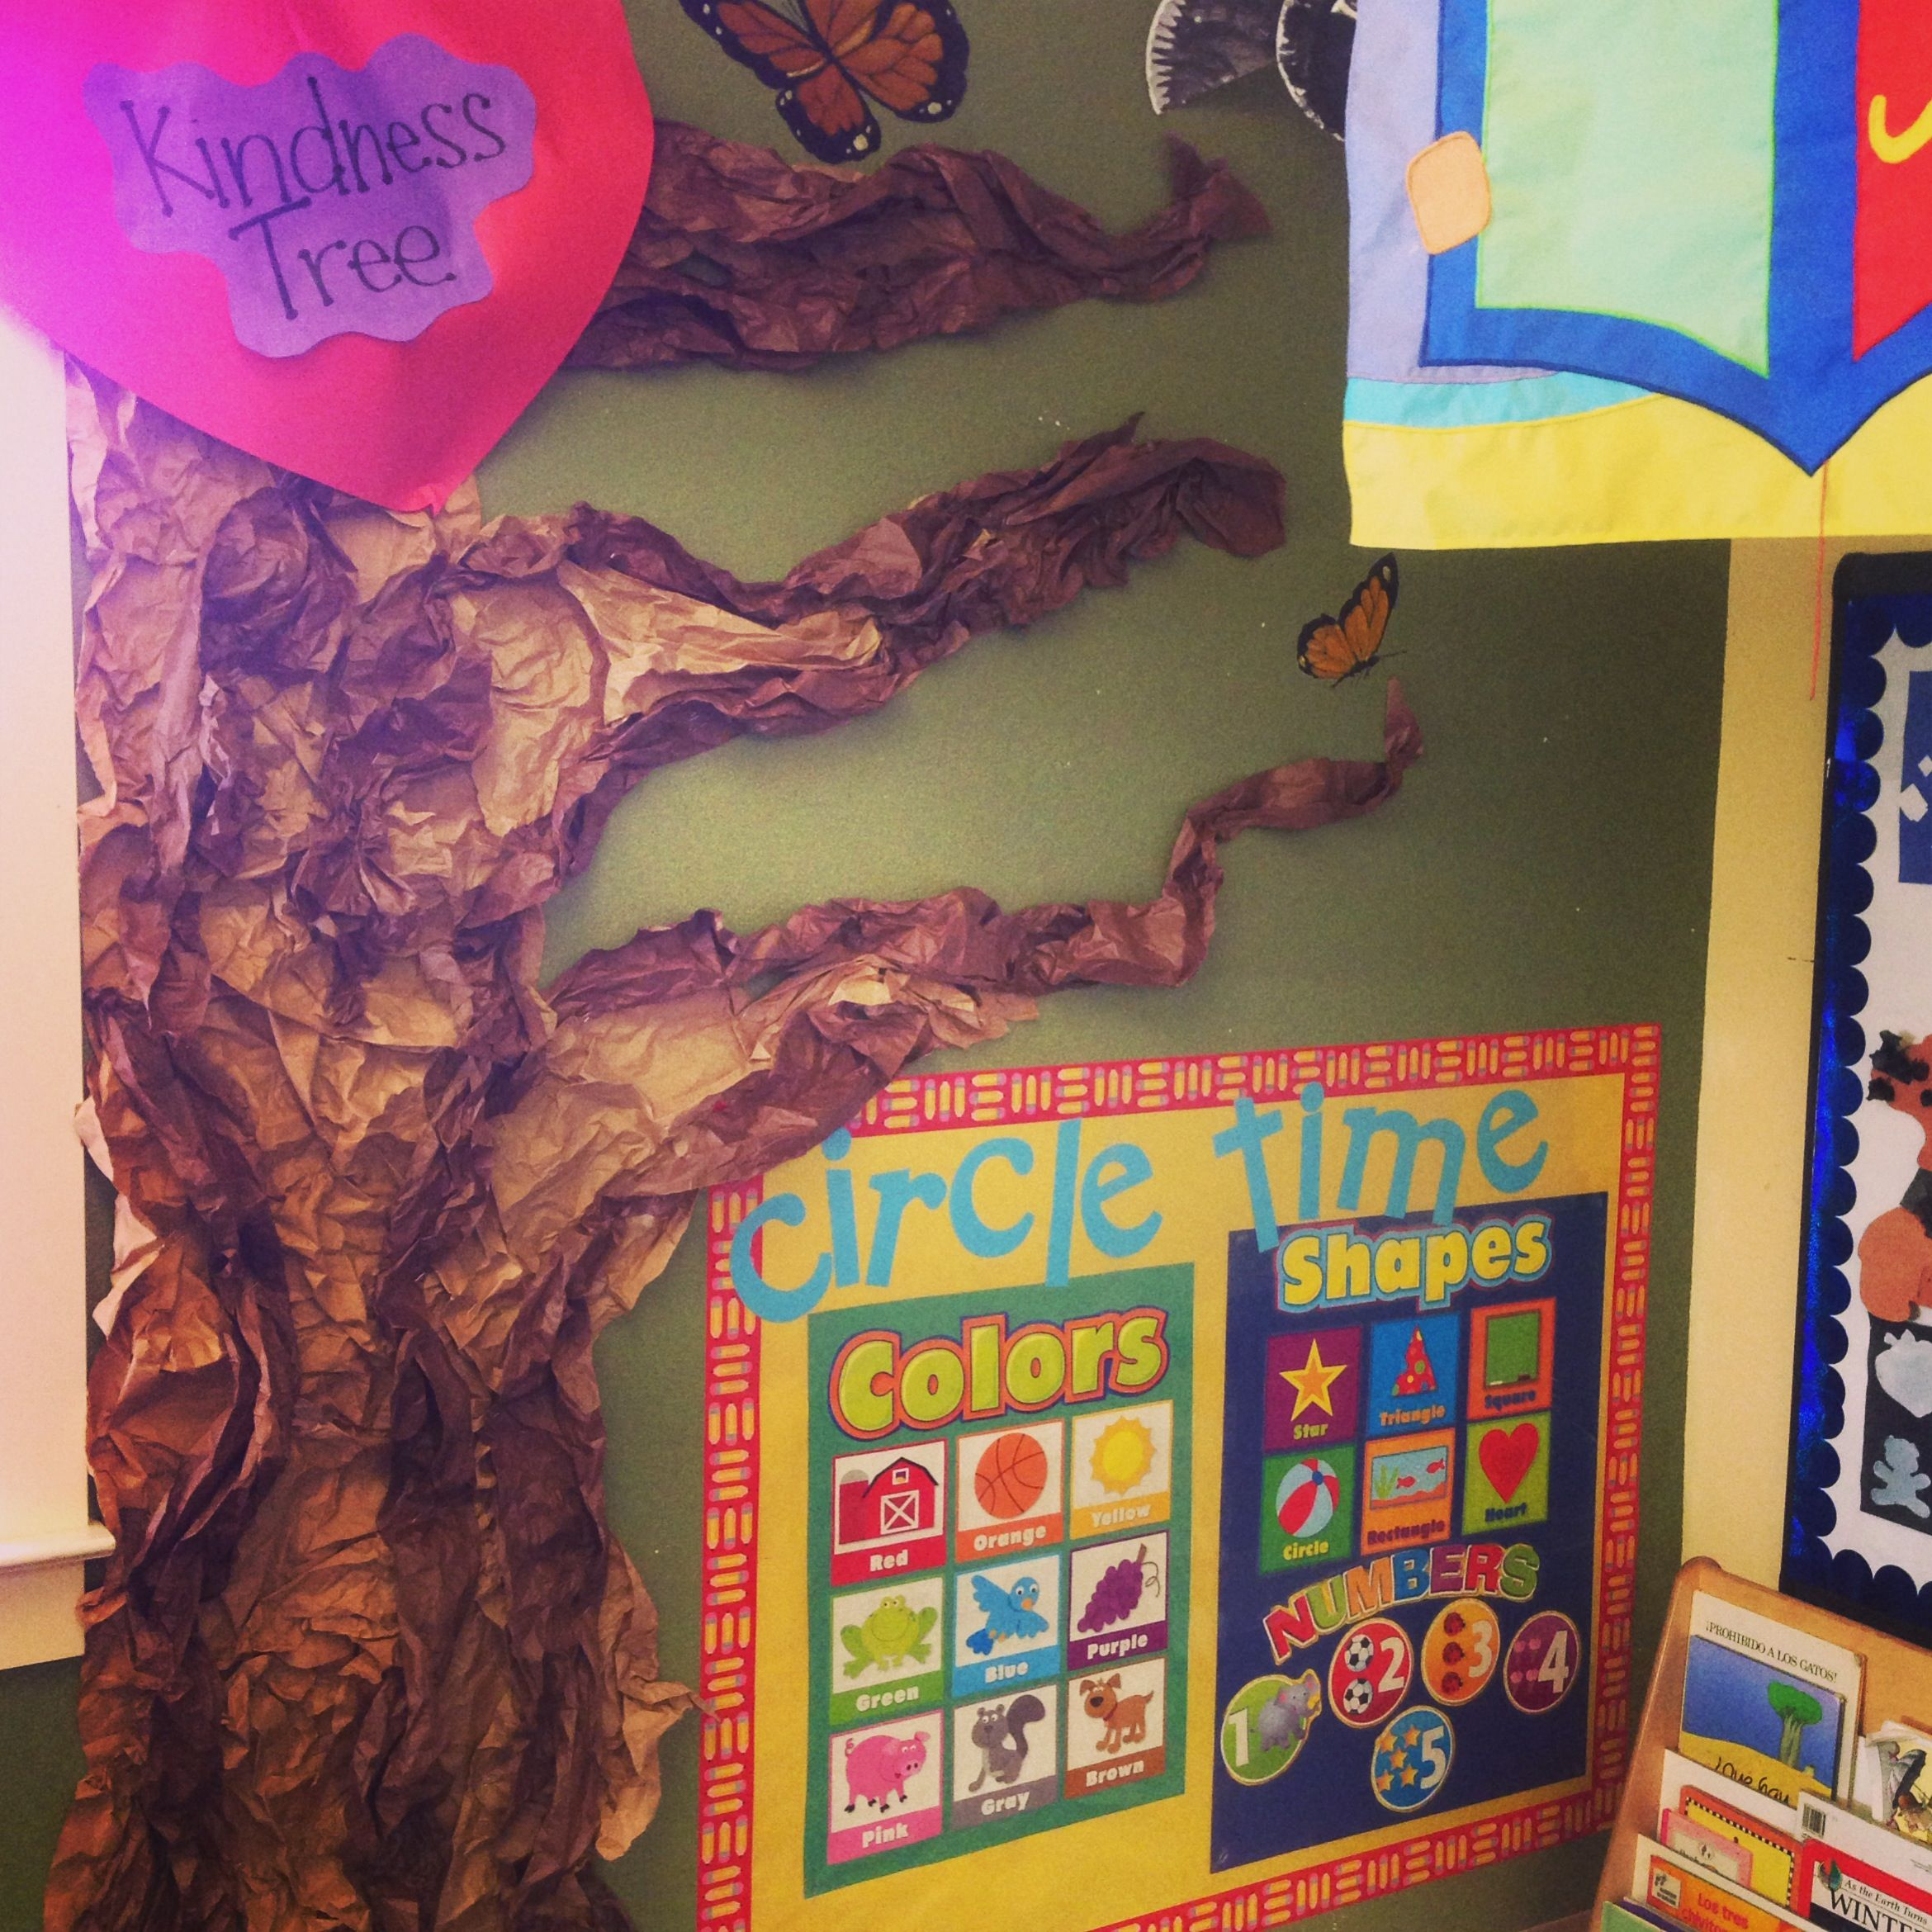 Kindness Tree When Ever A Child From Class Does An Act Of